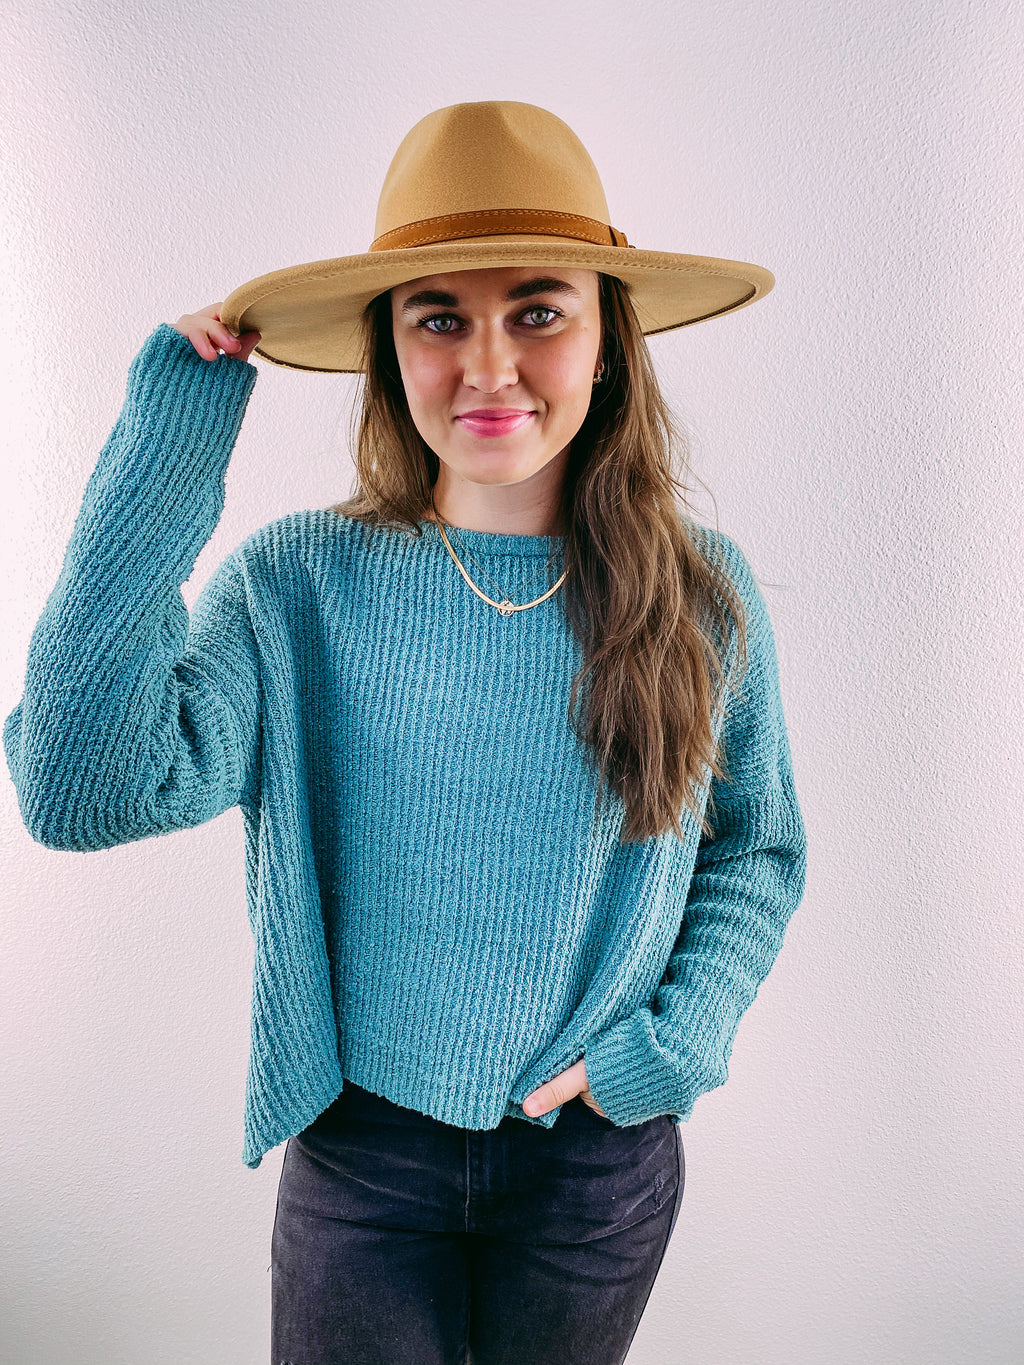 Cabin Fever Cozy Sweater - moss